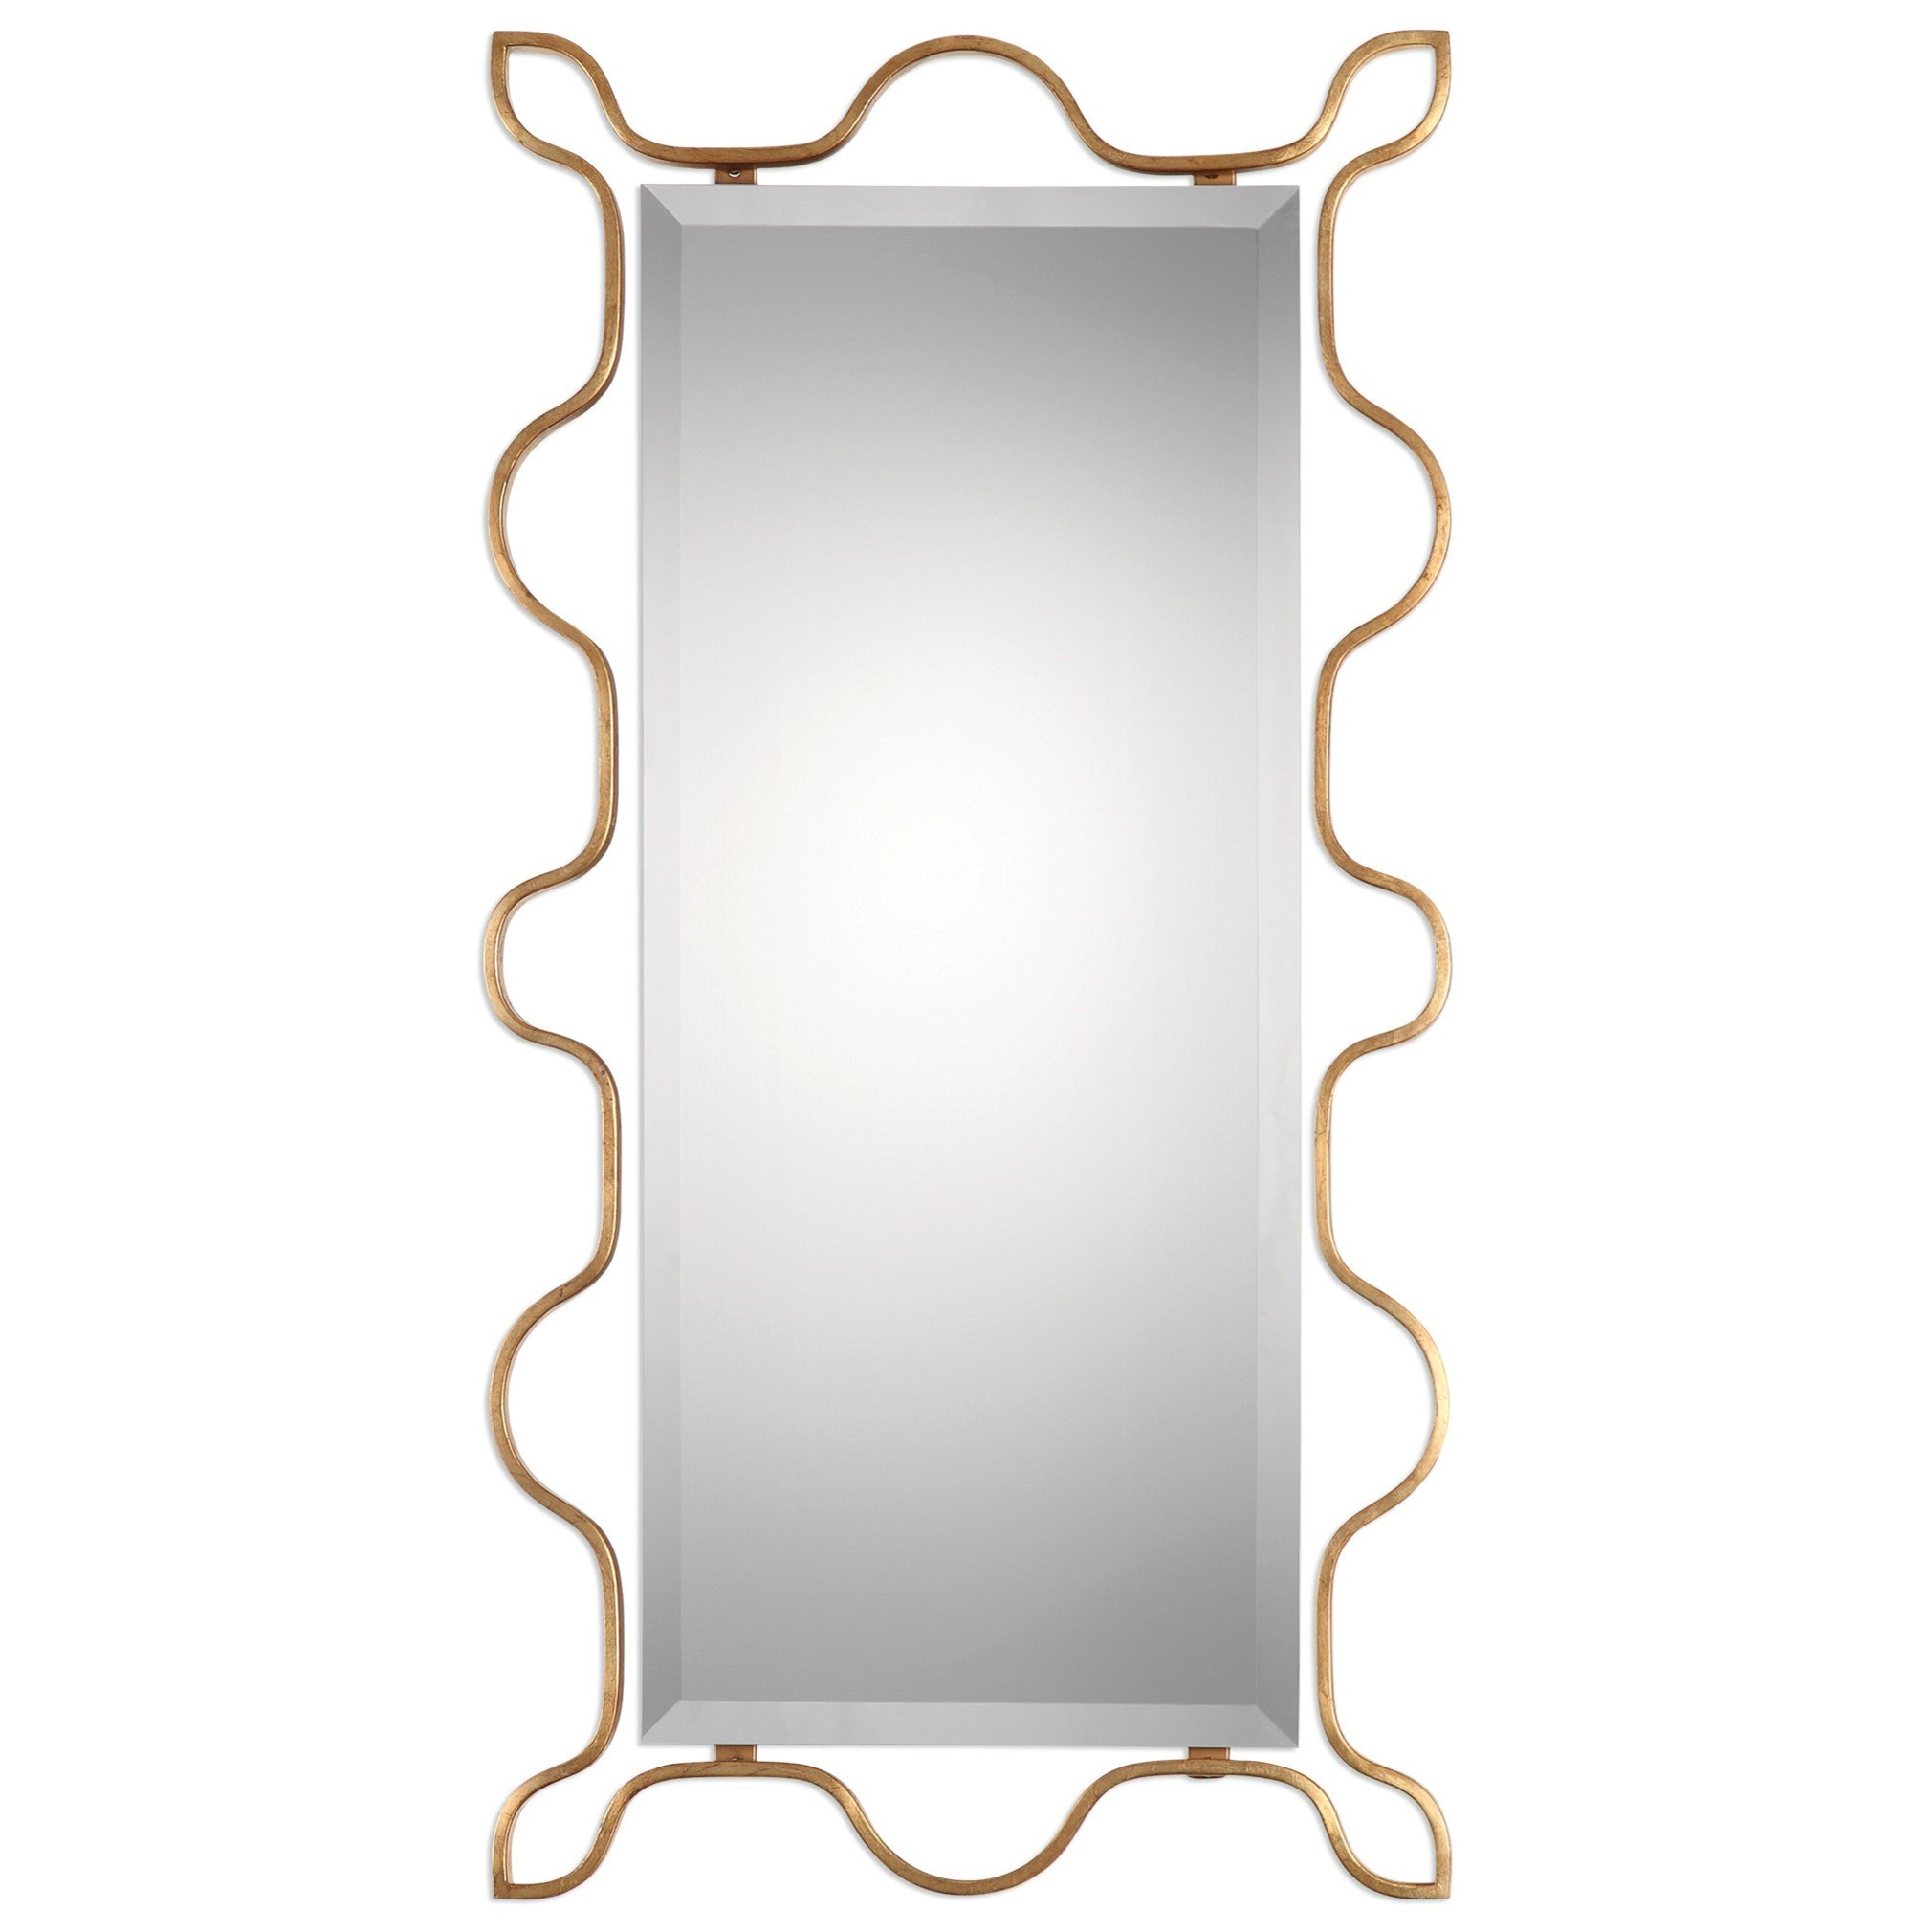 Uttermost Mirrors Nunica - Item Number: 09114